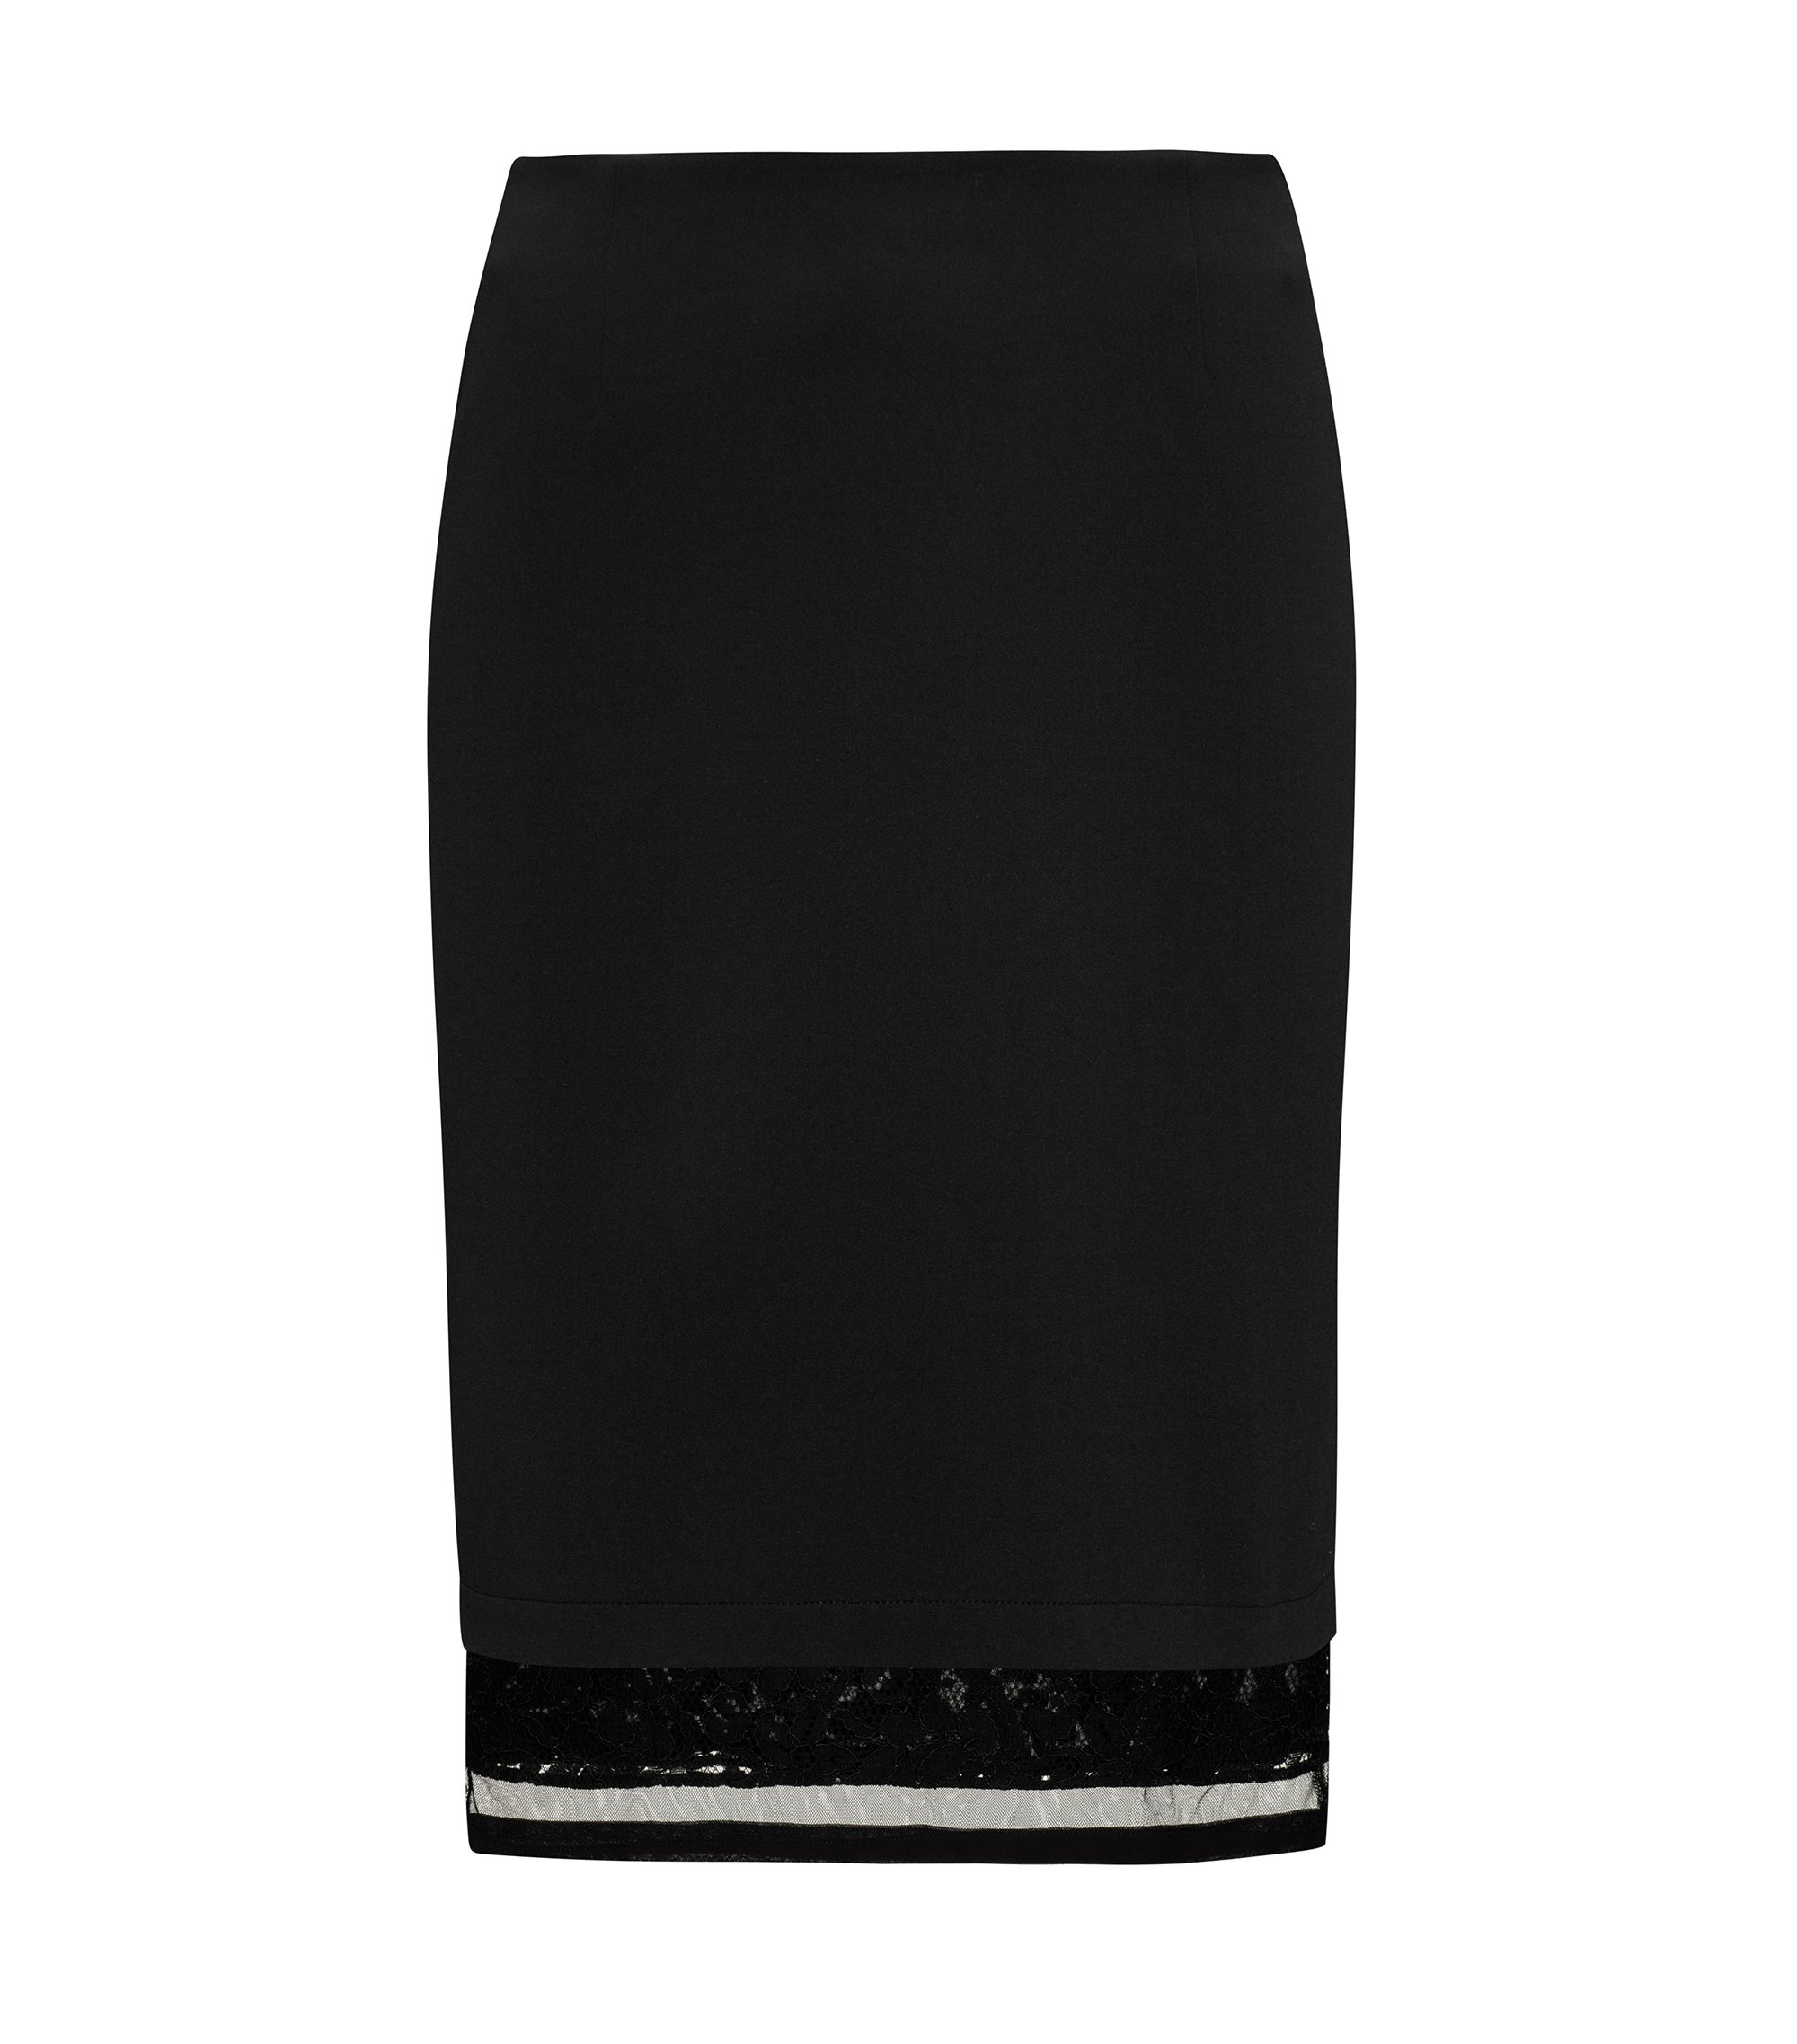 Bonded jersey knee-length skirt with extended lace and mesh hem, Black